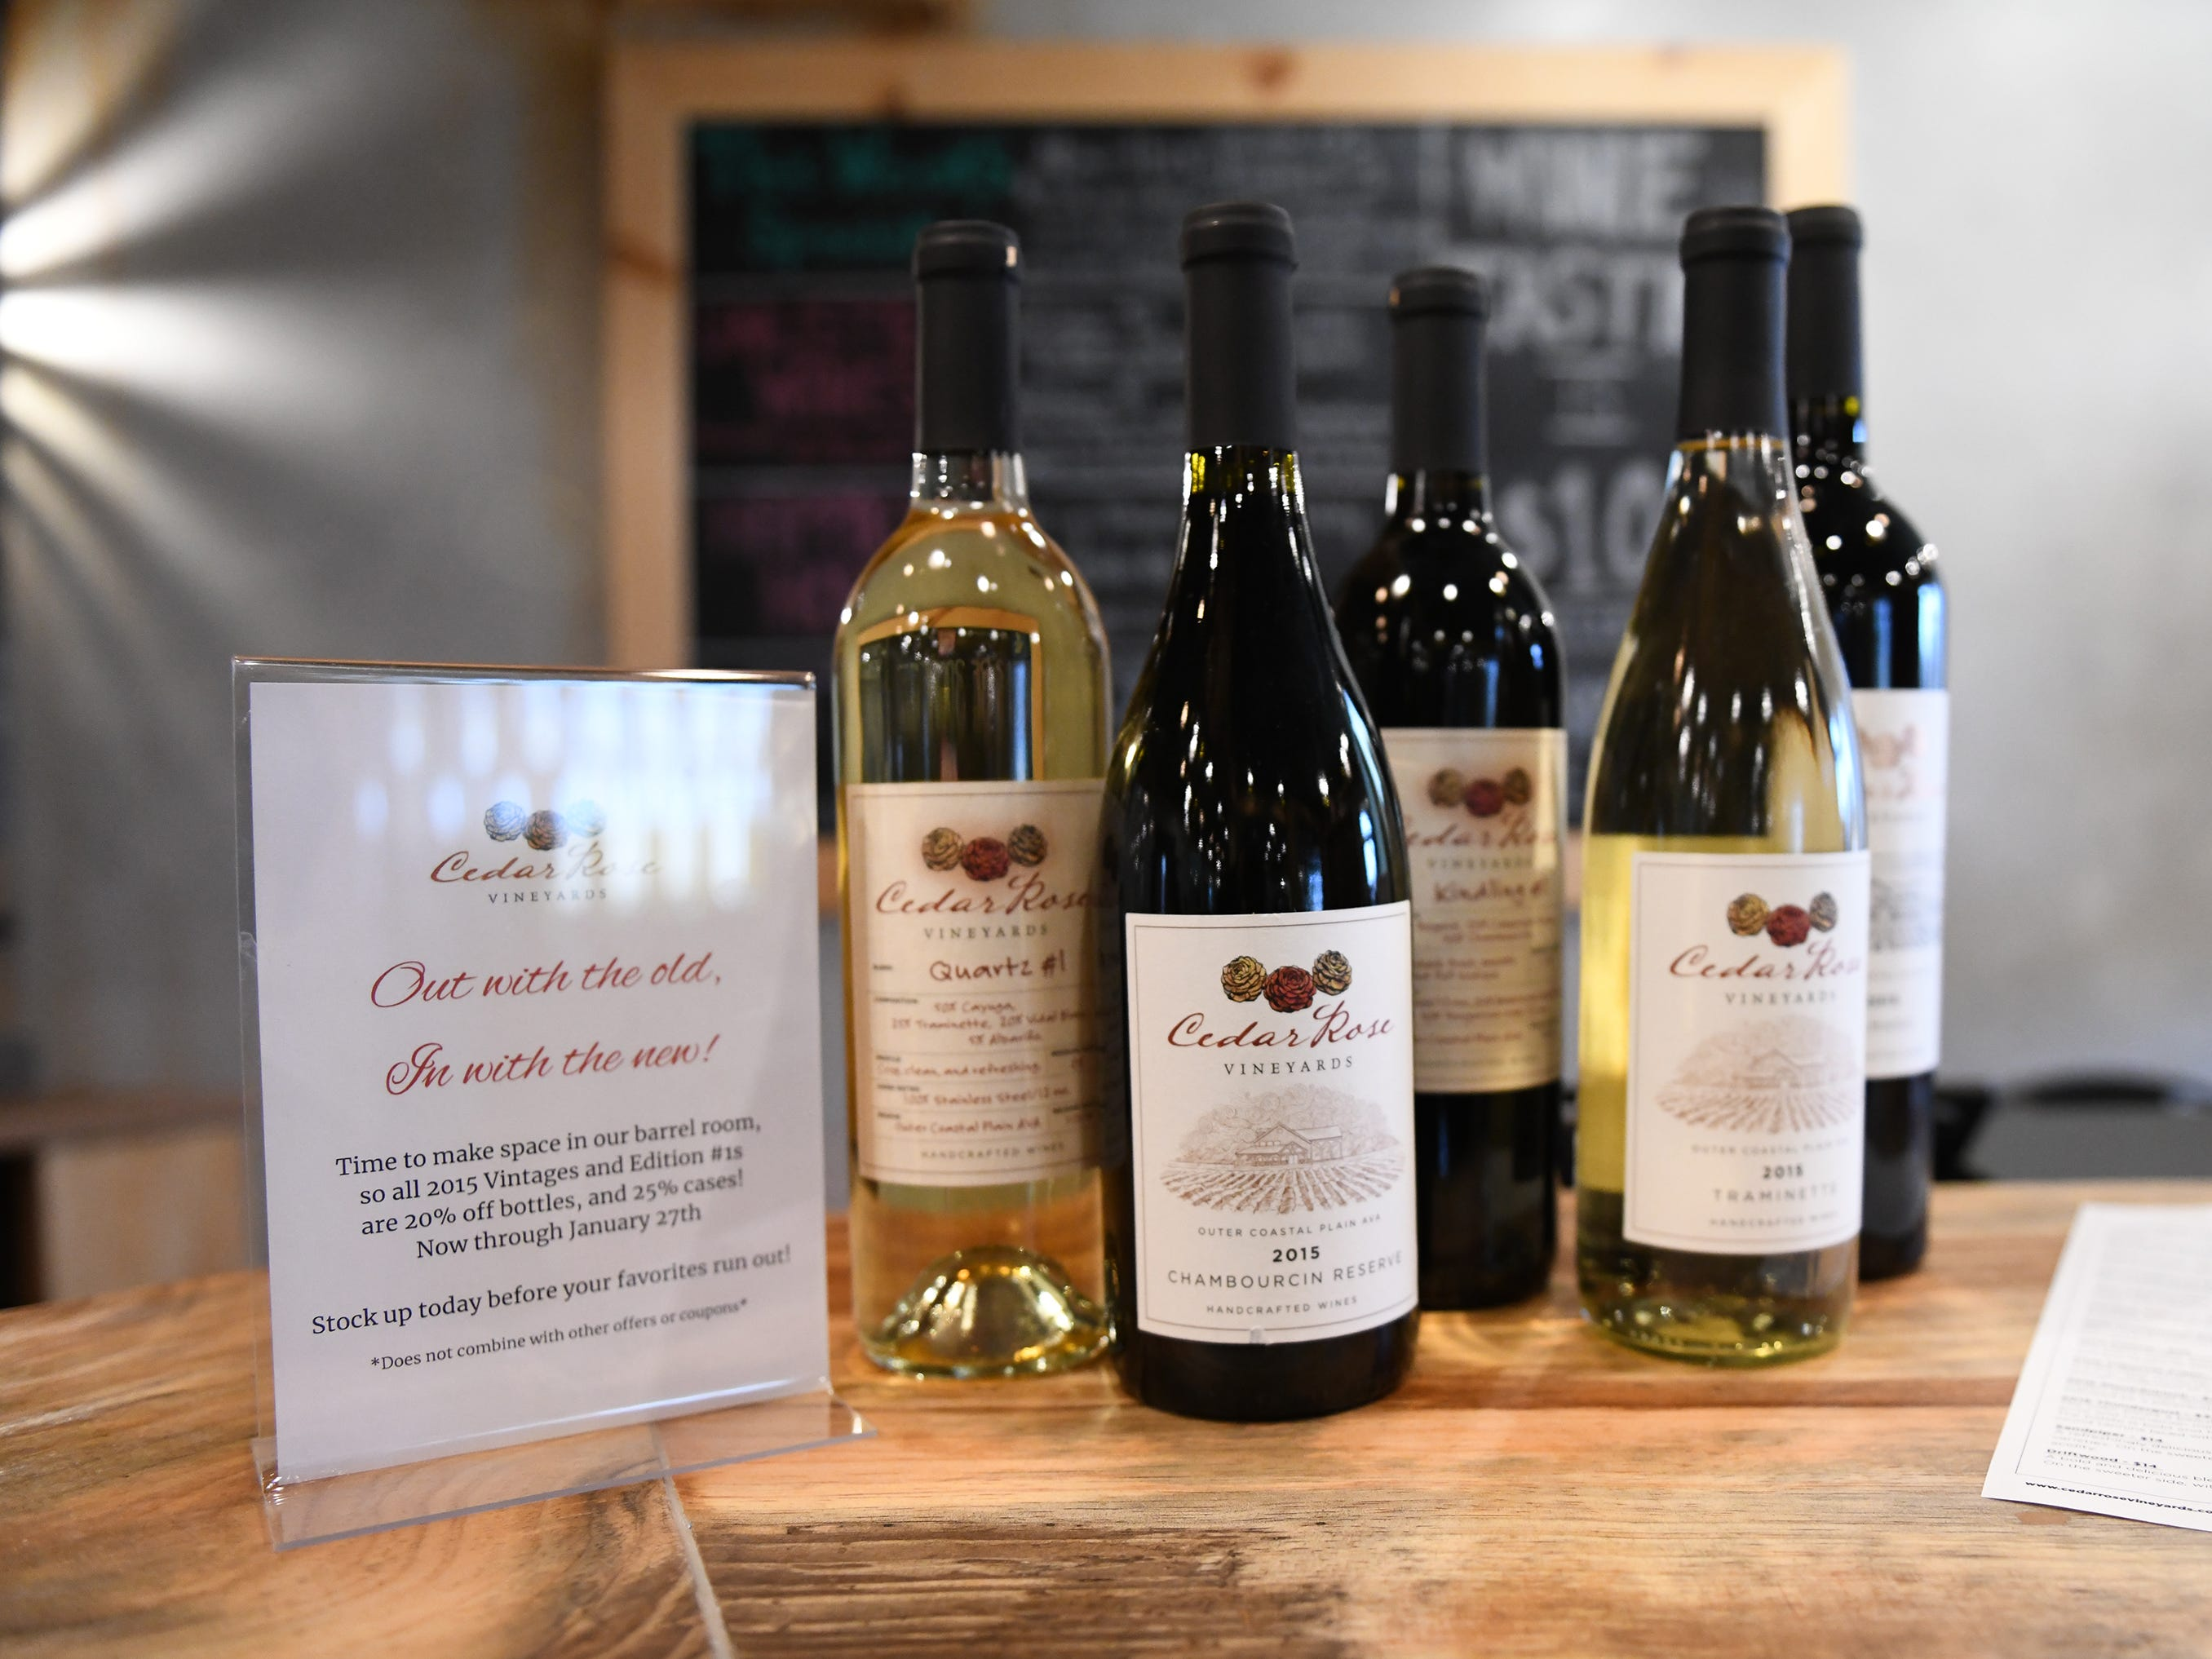 A selection of wine on display at Cedar Rose Vineyards in Rosenhayn on Tuesday, January 8, 2019.